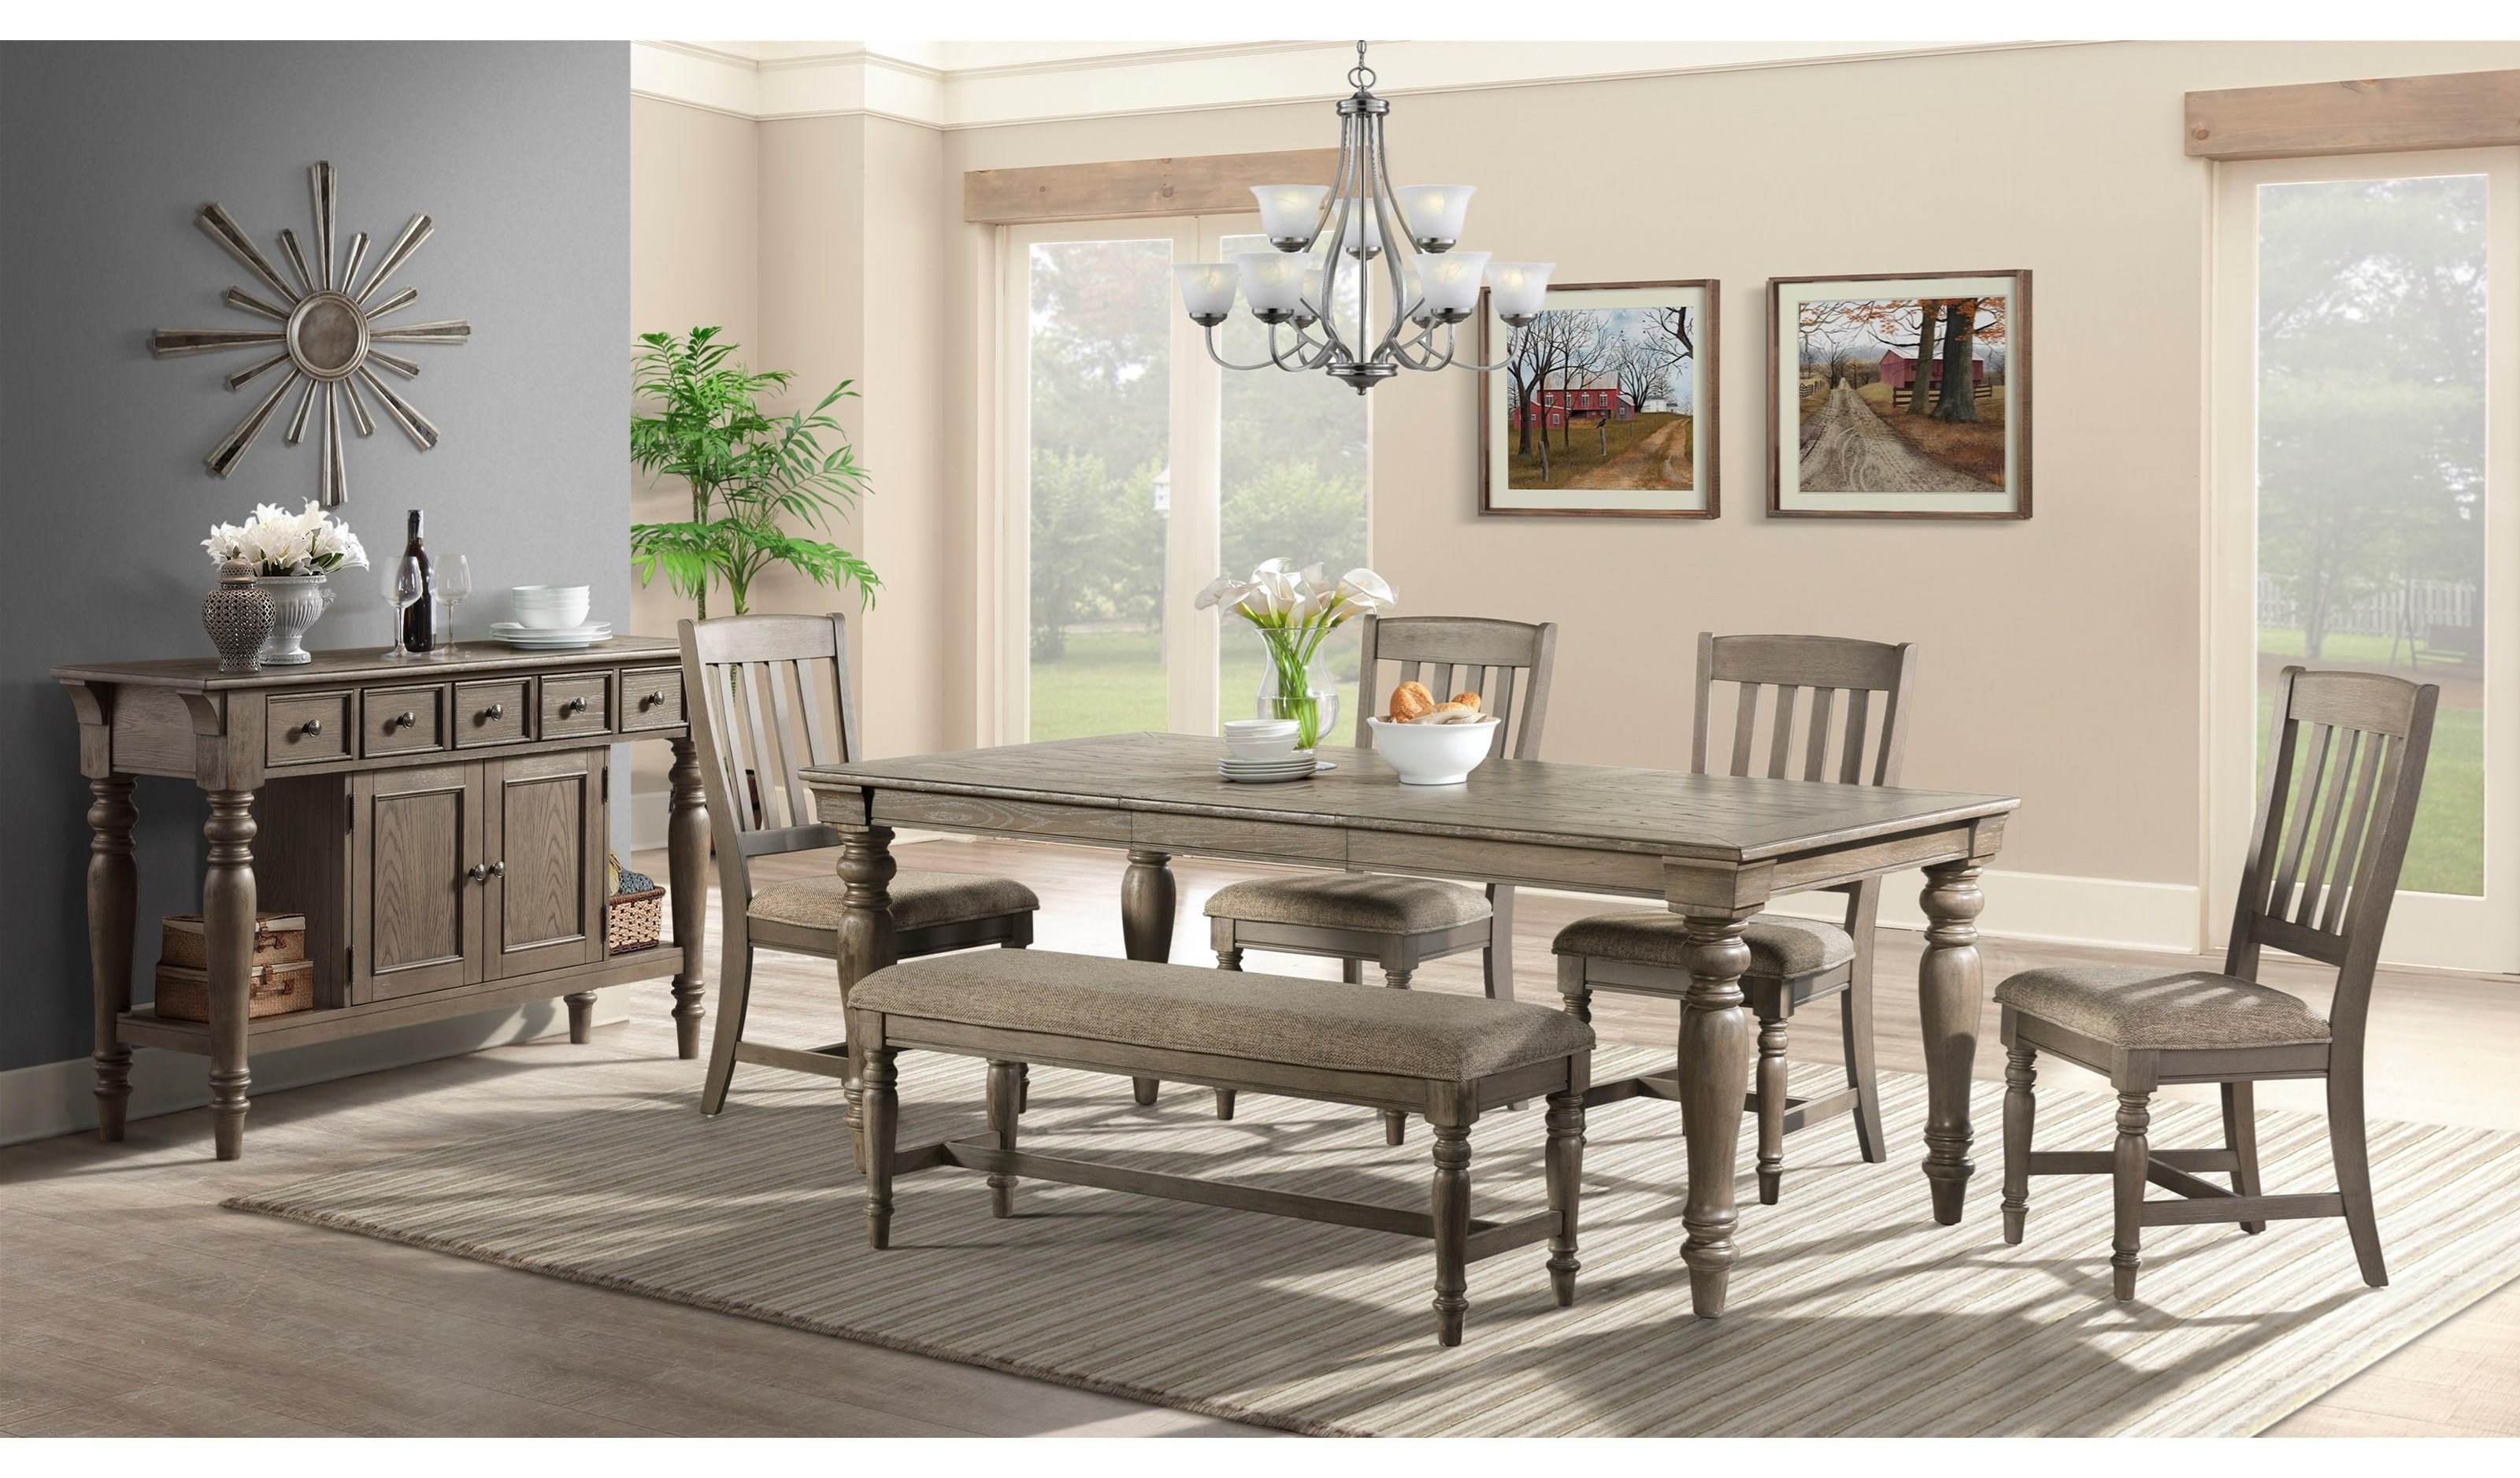 Balboa Park  5 Piece Dining Set by Intercon at Darvin Furniture